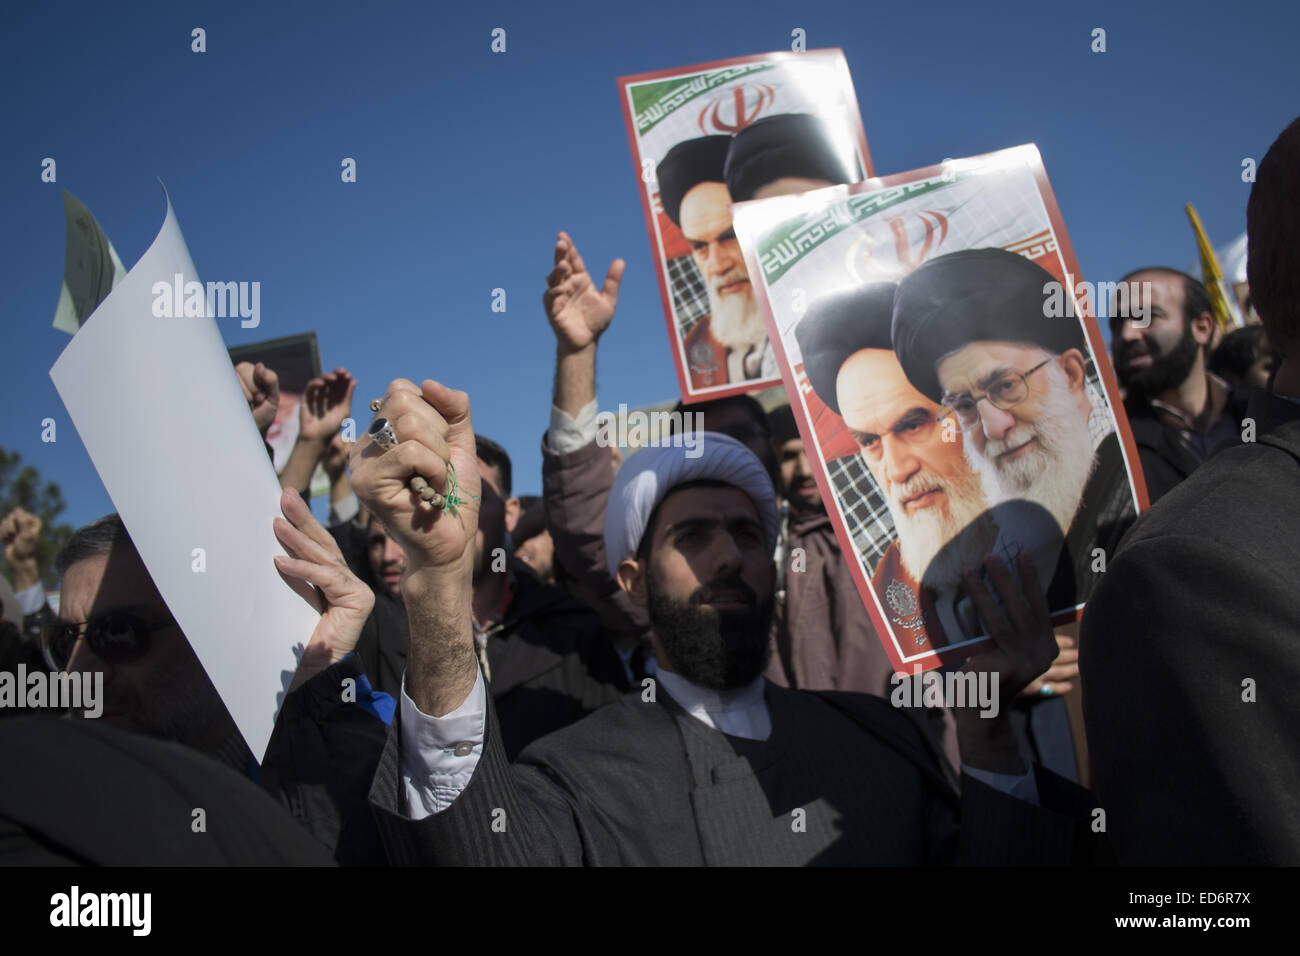 Qom, Iran. 29th Dec, 2014. December 30, 2014 - Qom, Iran - An Iranian cleric shouts anti-U.S. and anti-Israel slogans - Stock Image